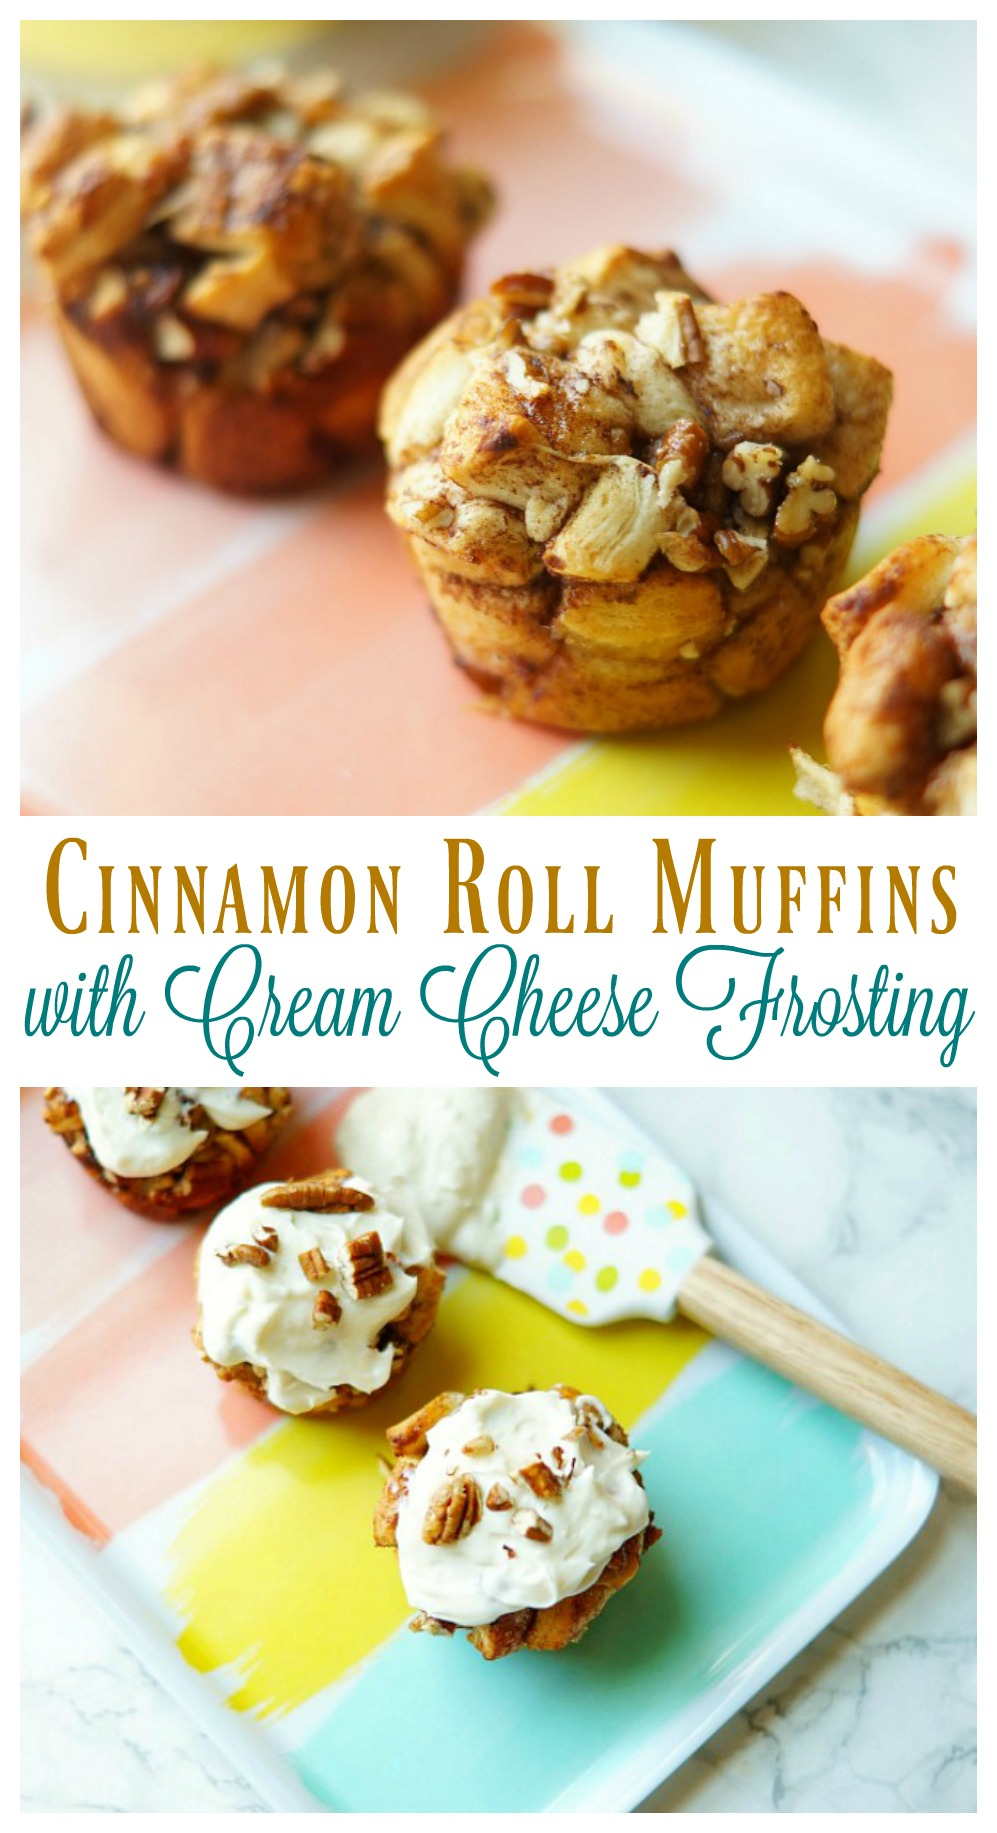 Cinnamon Roll Muffins with Cream Cheese Frosting